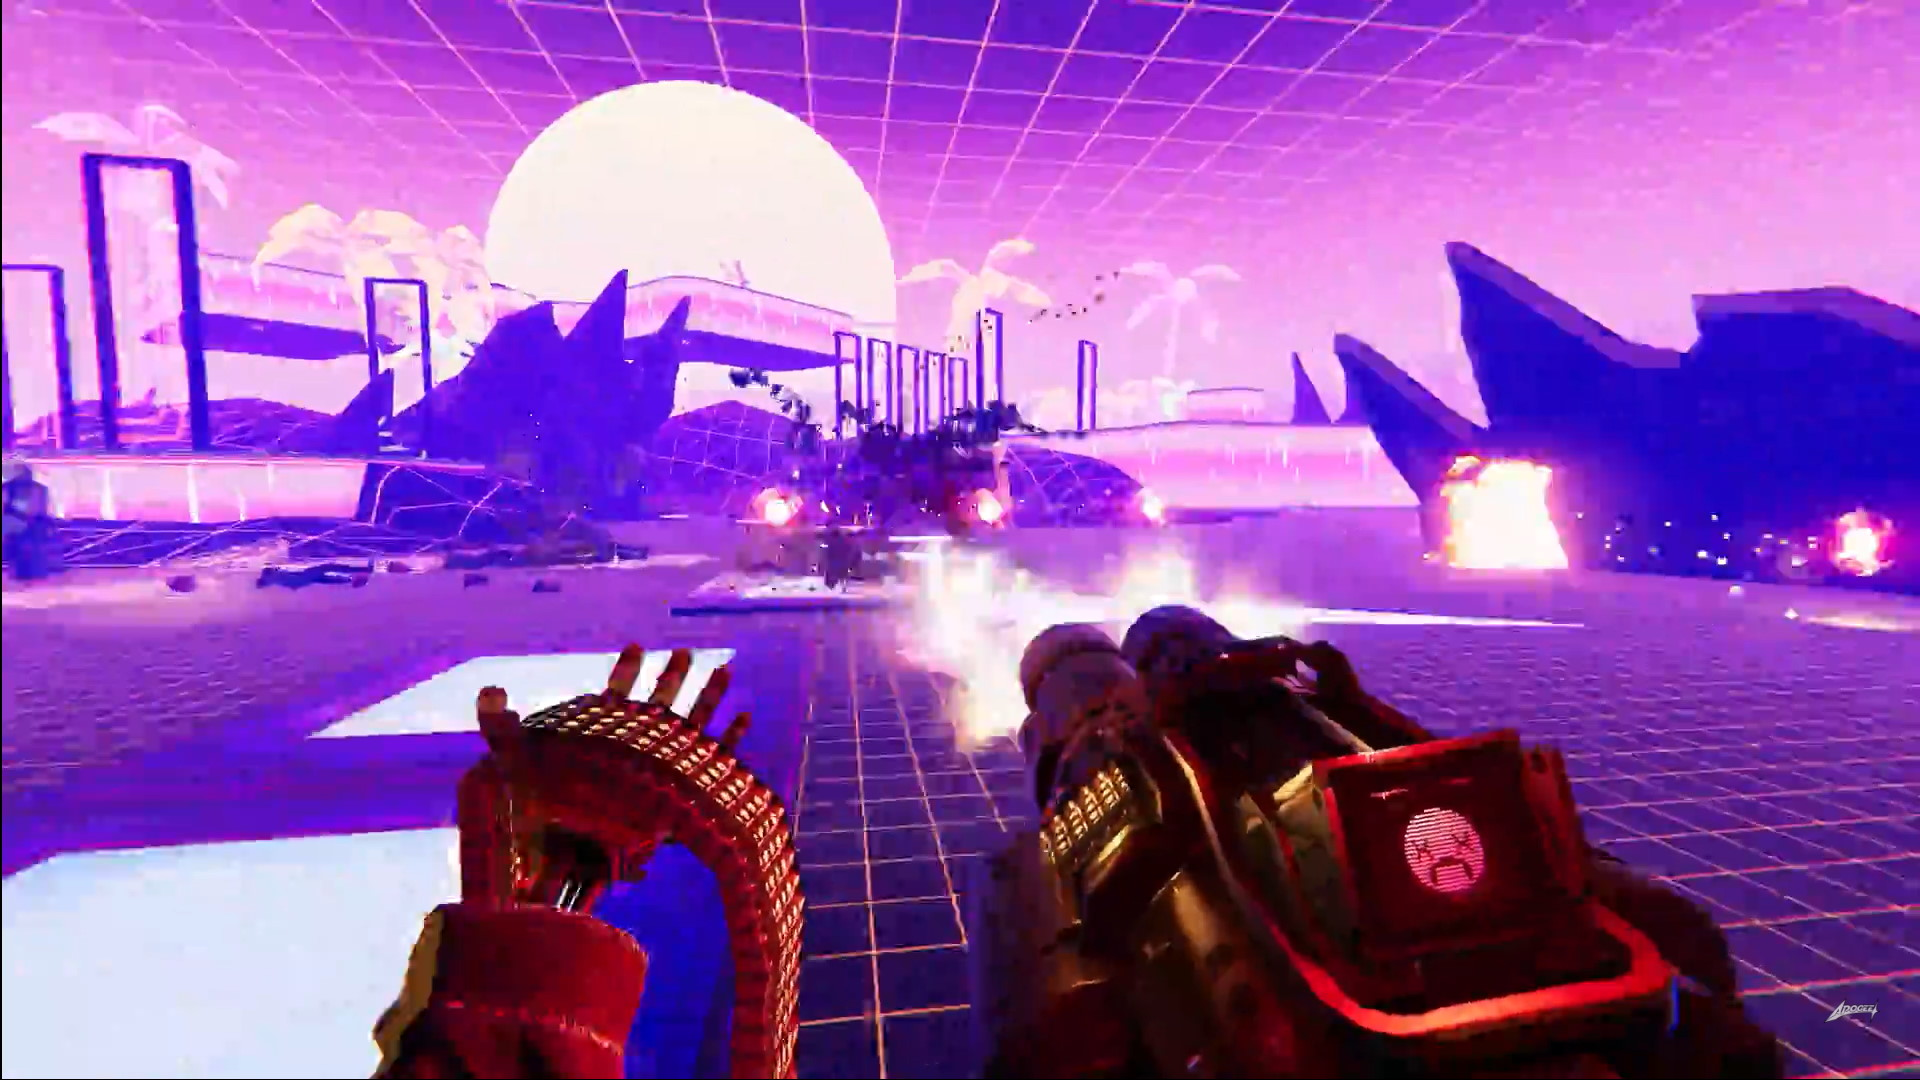 Brutal Cyberpunk FPS Turbo Overkill Unleashes Neon Nostalgia on PC,  Consoles 2022 - BunnyGaming.com